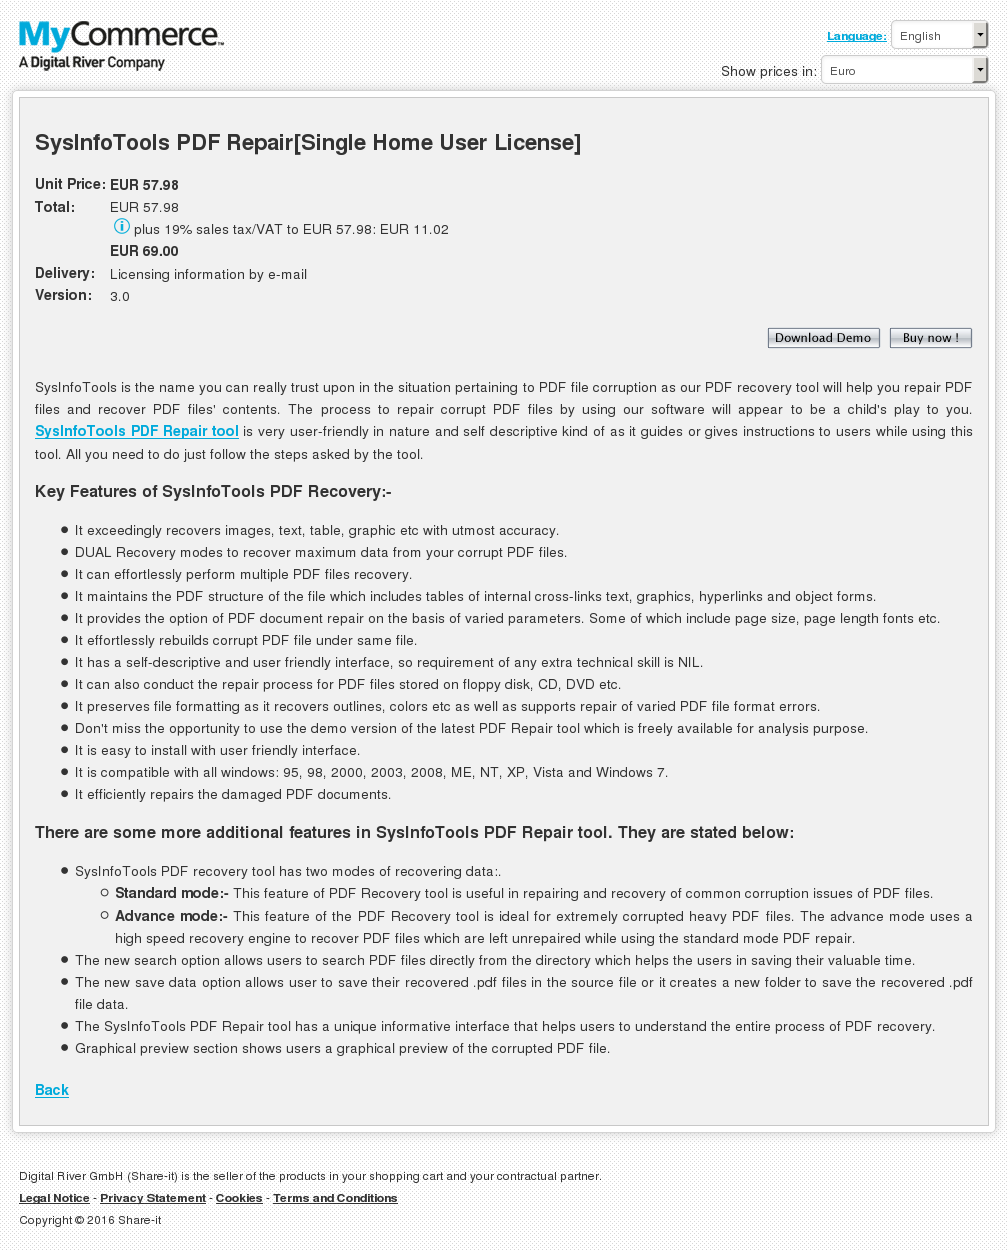 Sysinfotools Pdf Repair Single Home User License Howto